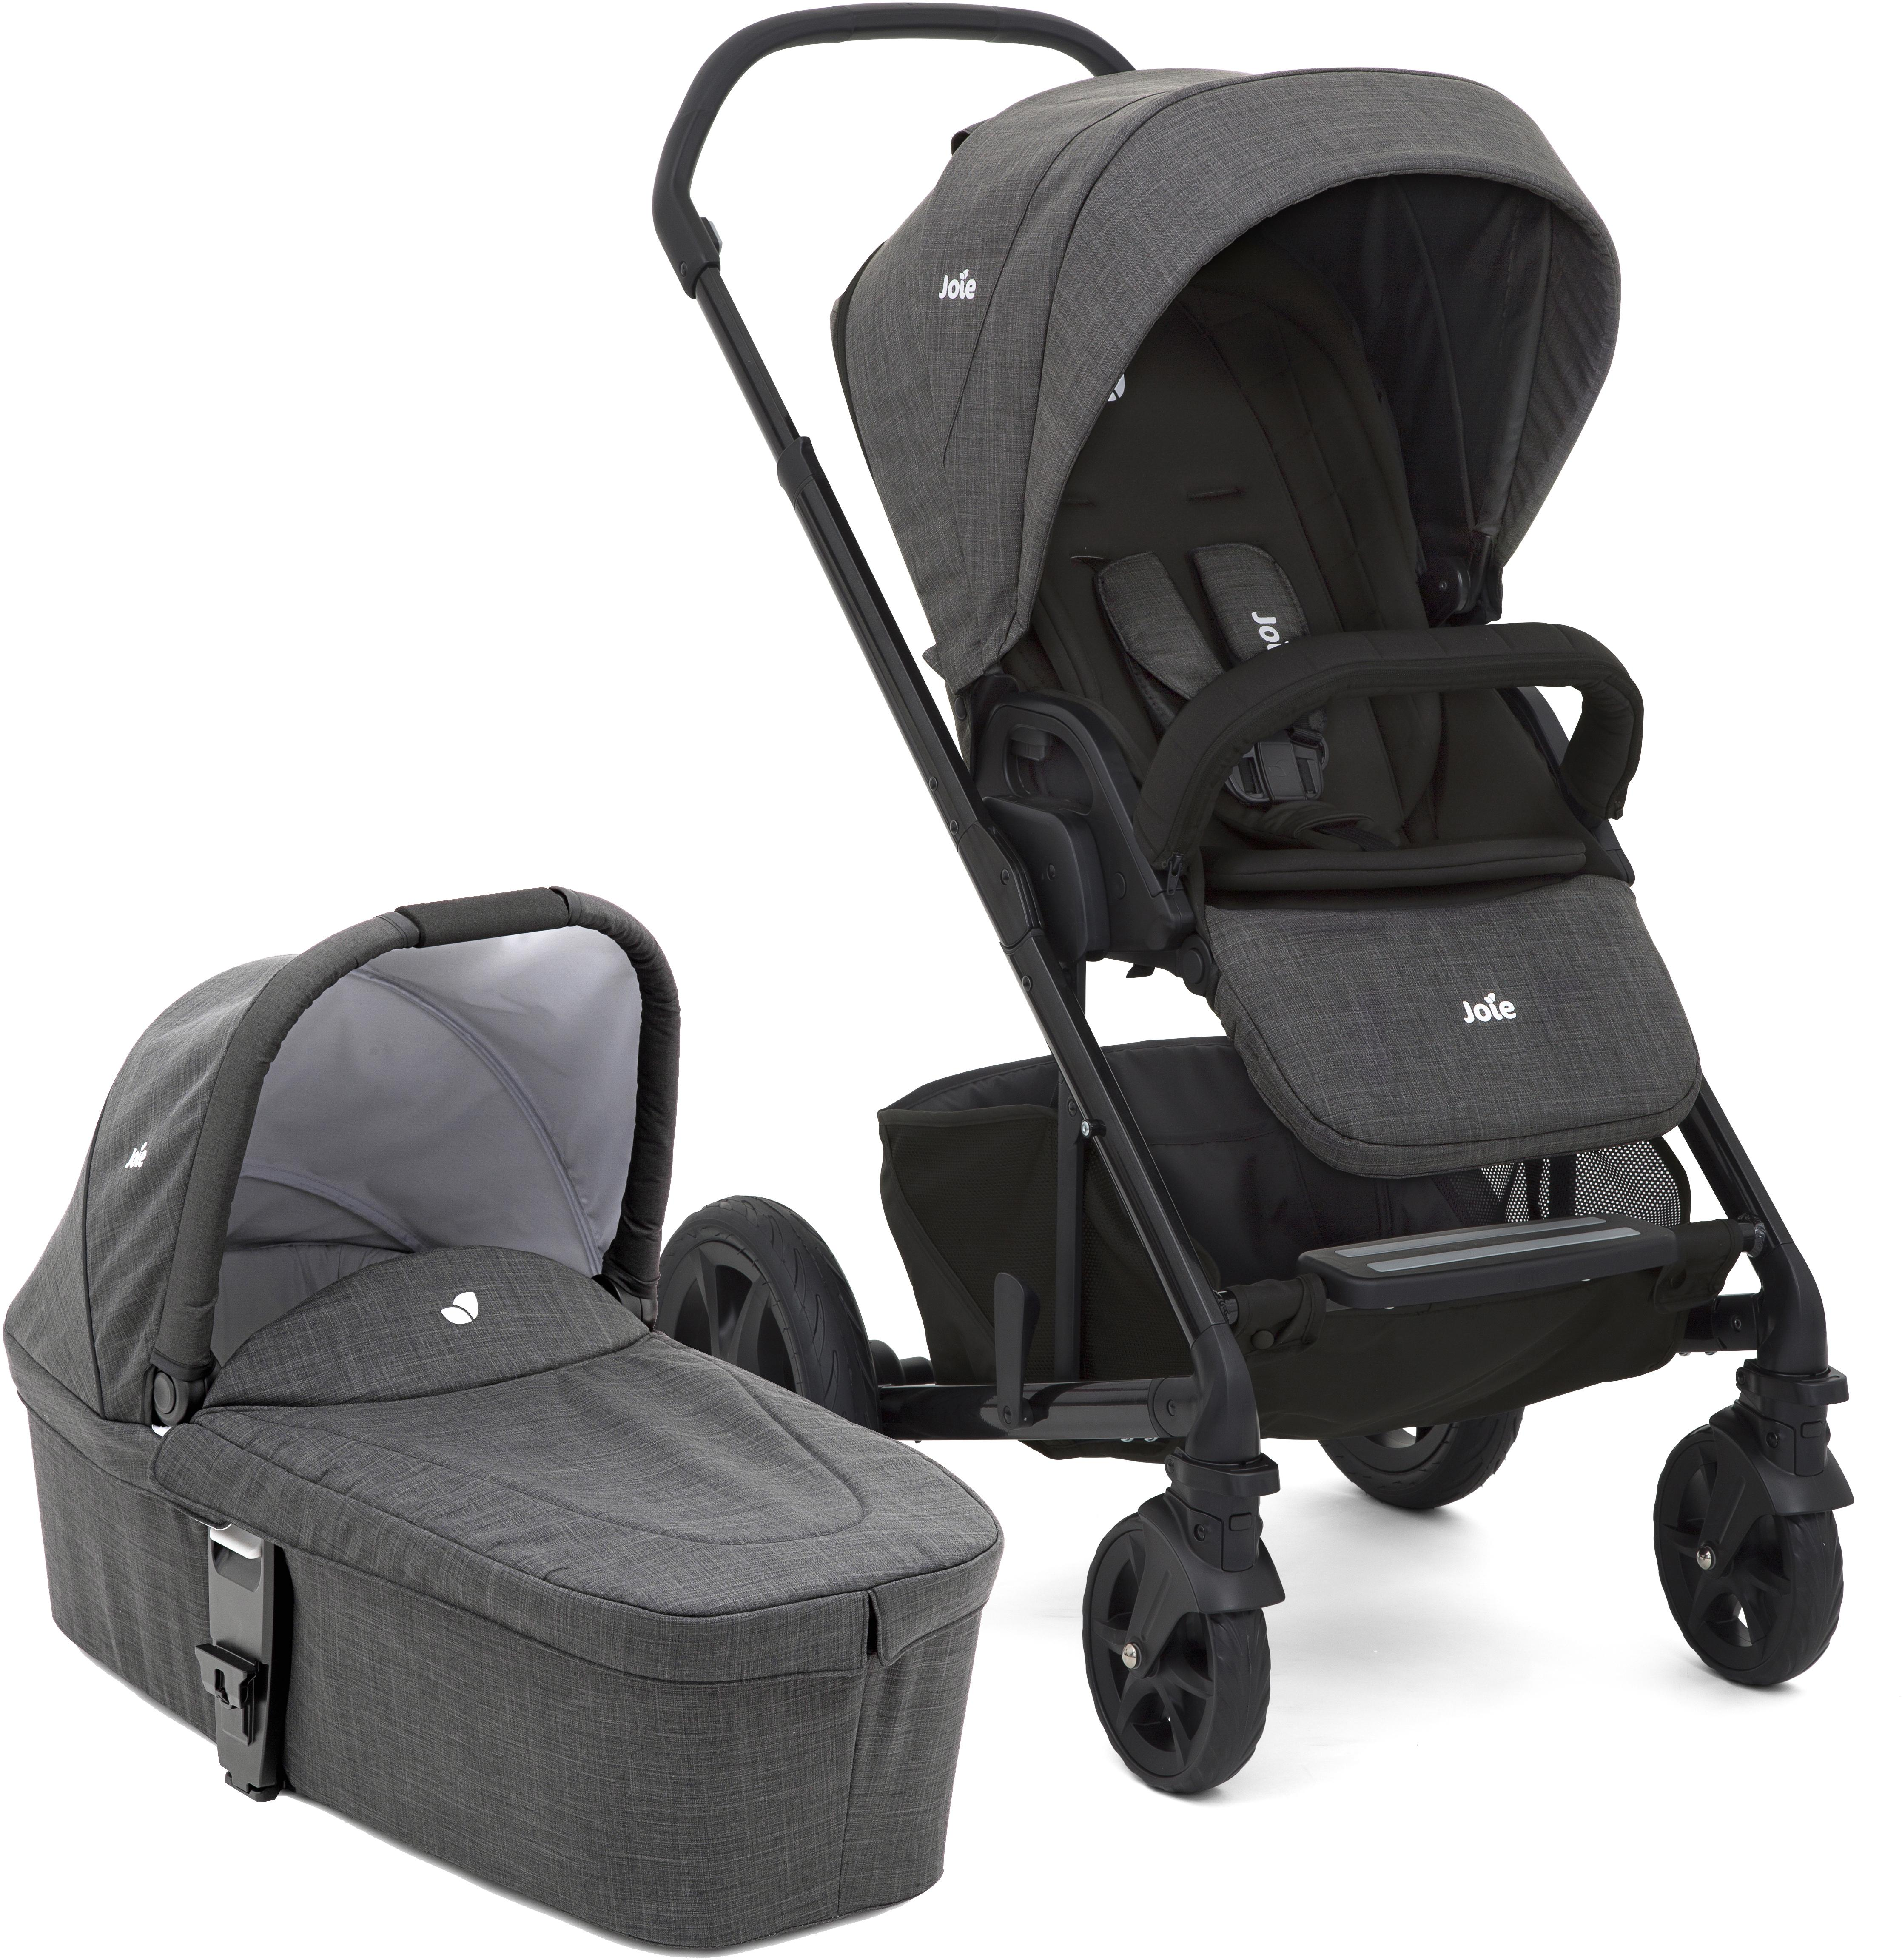 Joie Buggy Chrome Test Joie Chrome Dlx Review The Ultimate Budget Pushchair